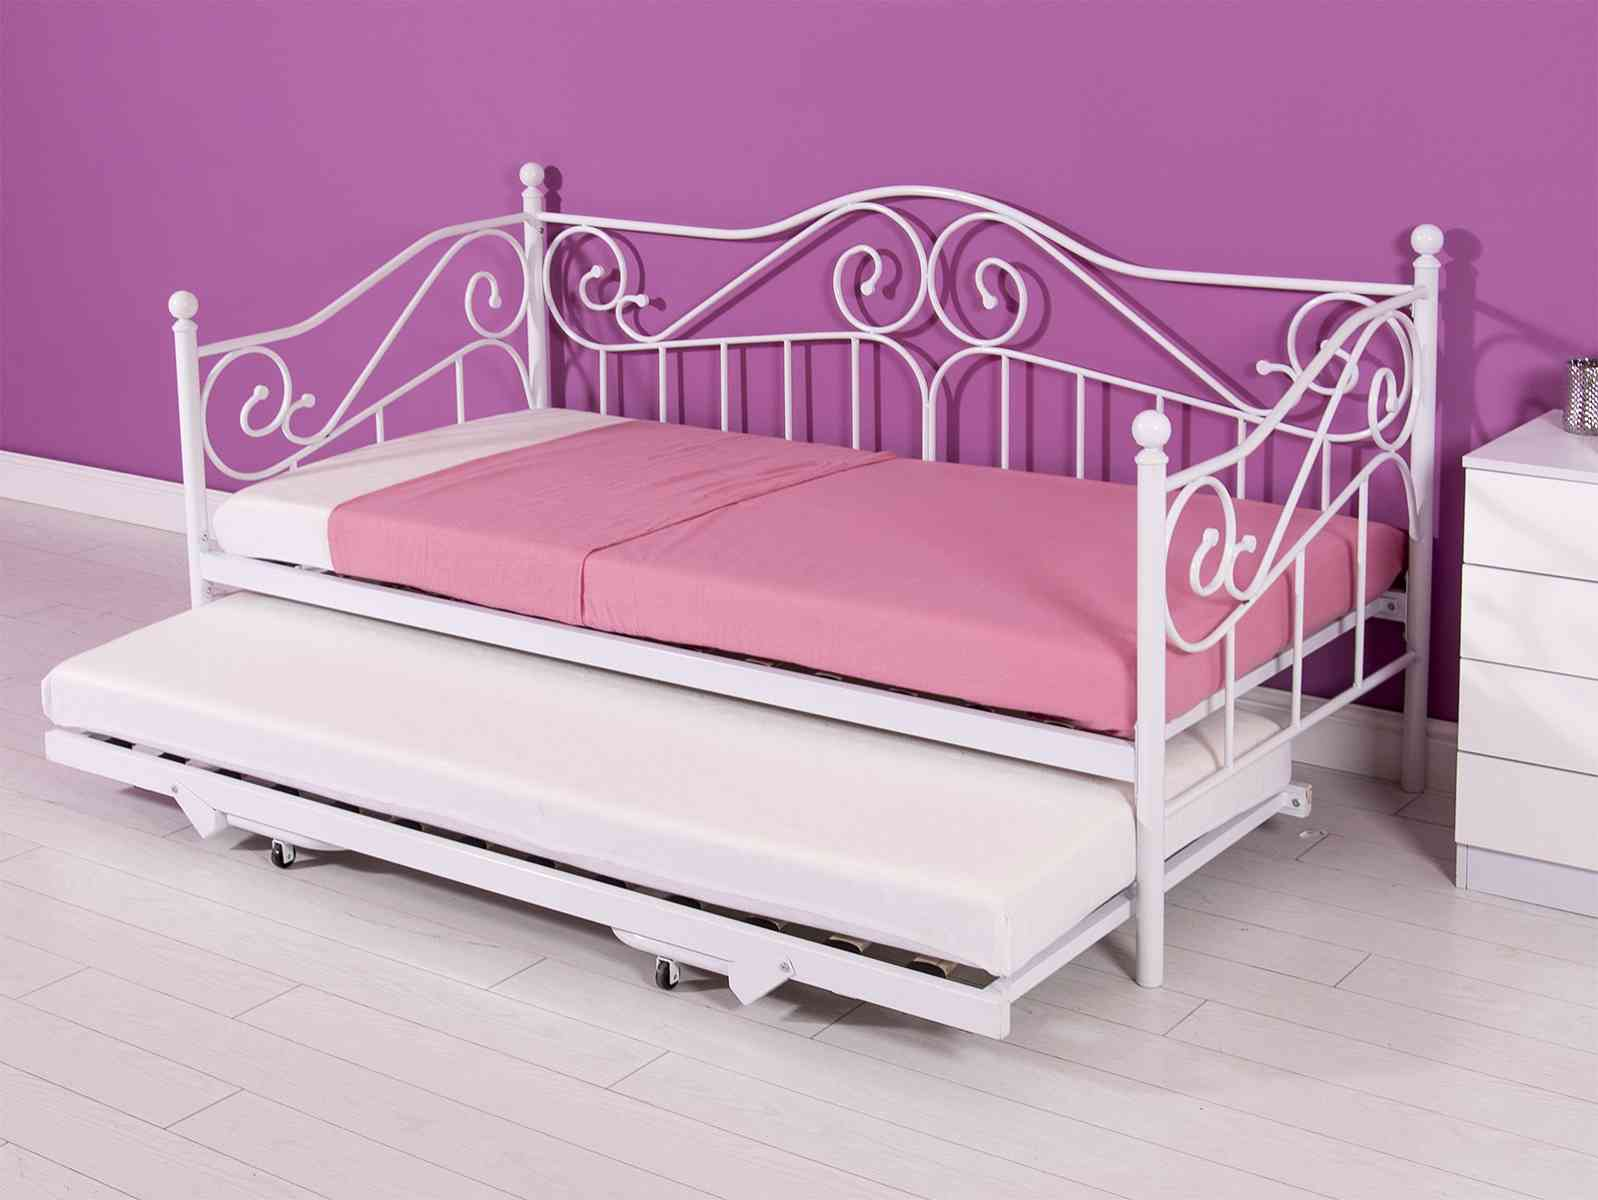 Day Beds with Trundle | Cheap Daybeds | Daybed with Trundle and Storage